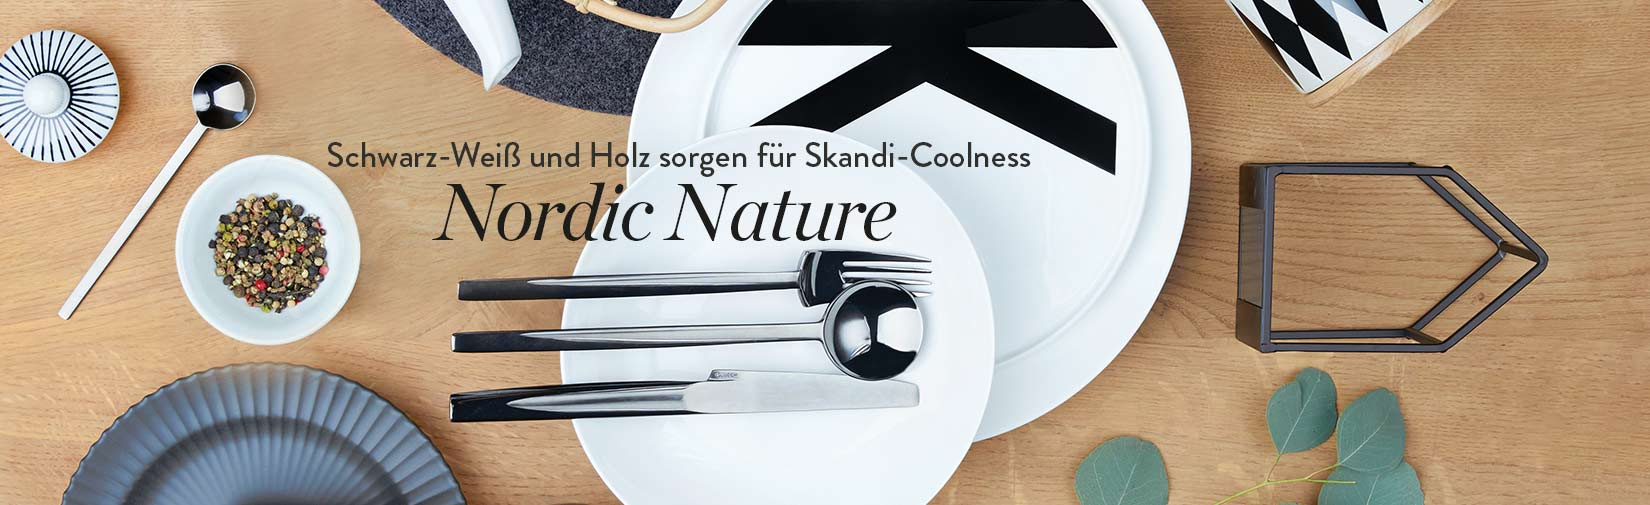 Tisch-Styling Nordic Nature